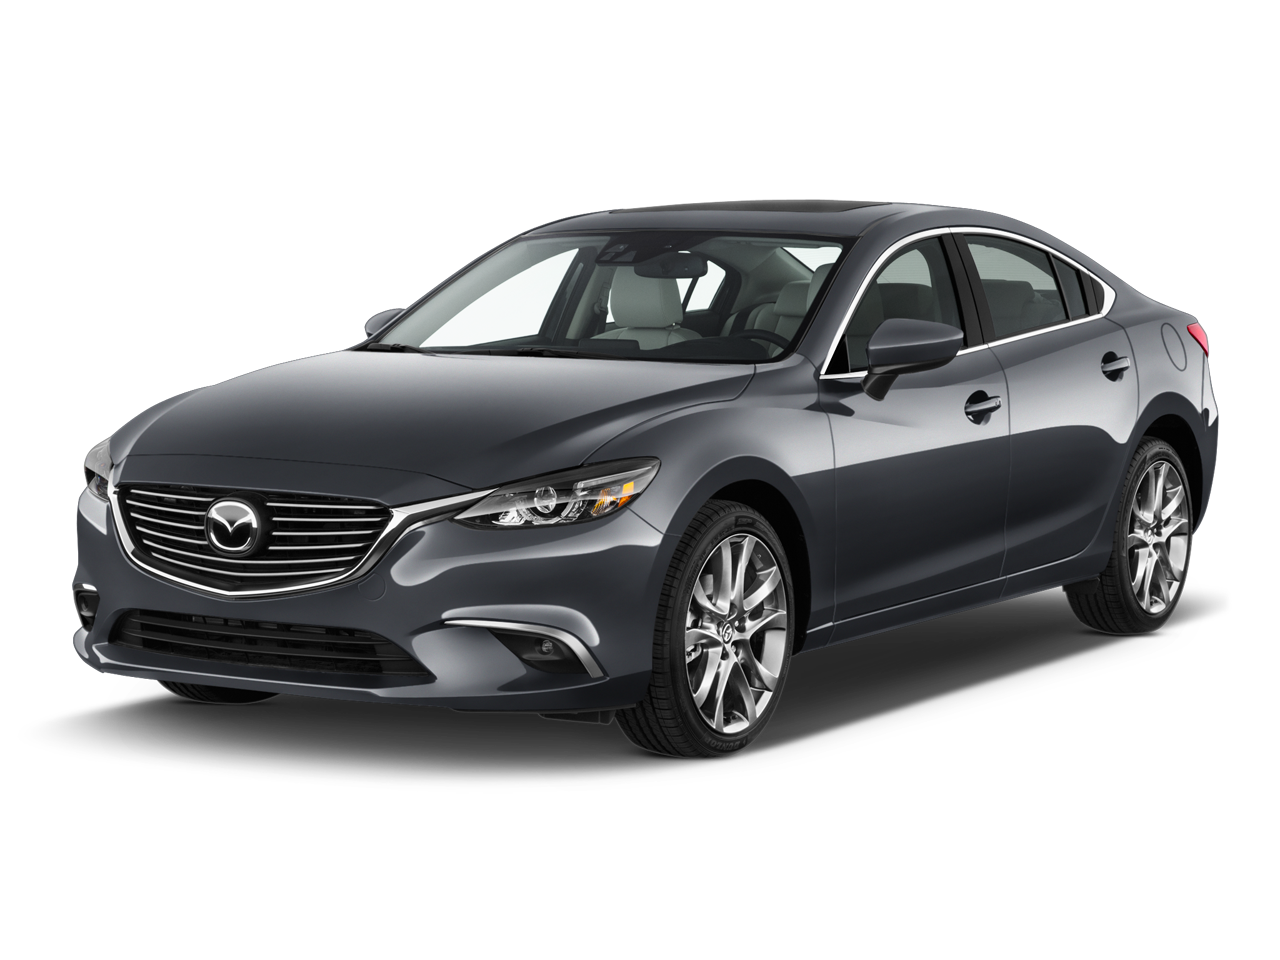 new 2017 mazda mazda6 grand touring near mount morris pa